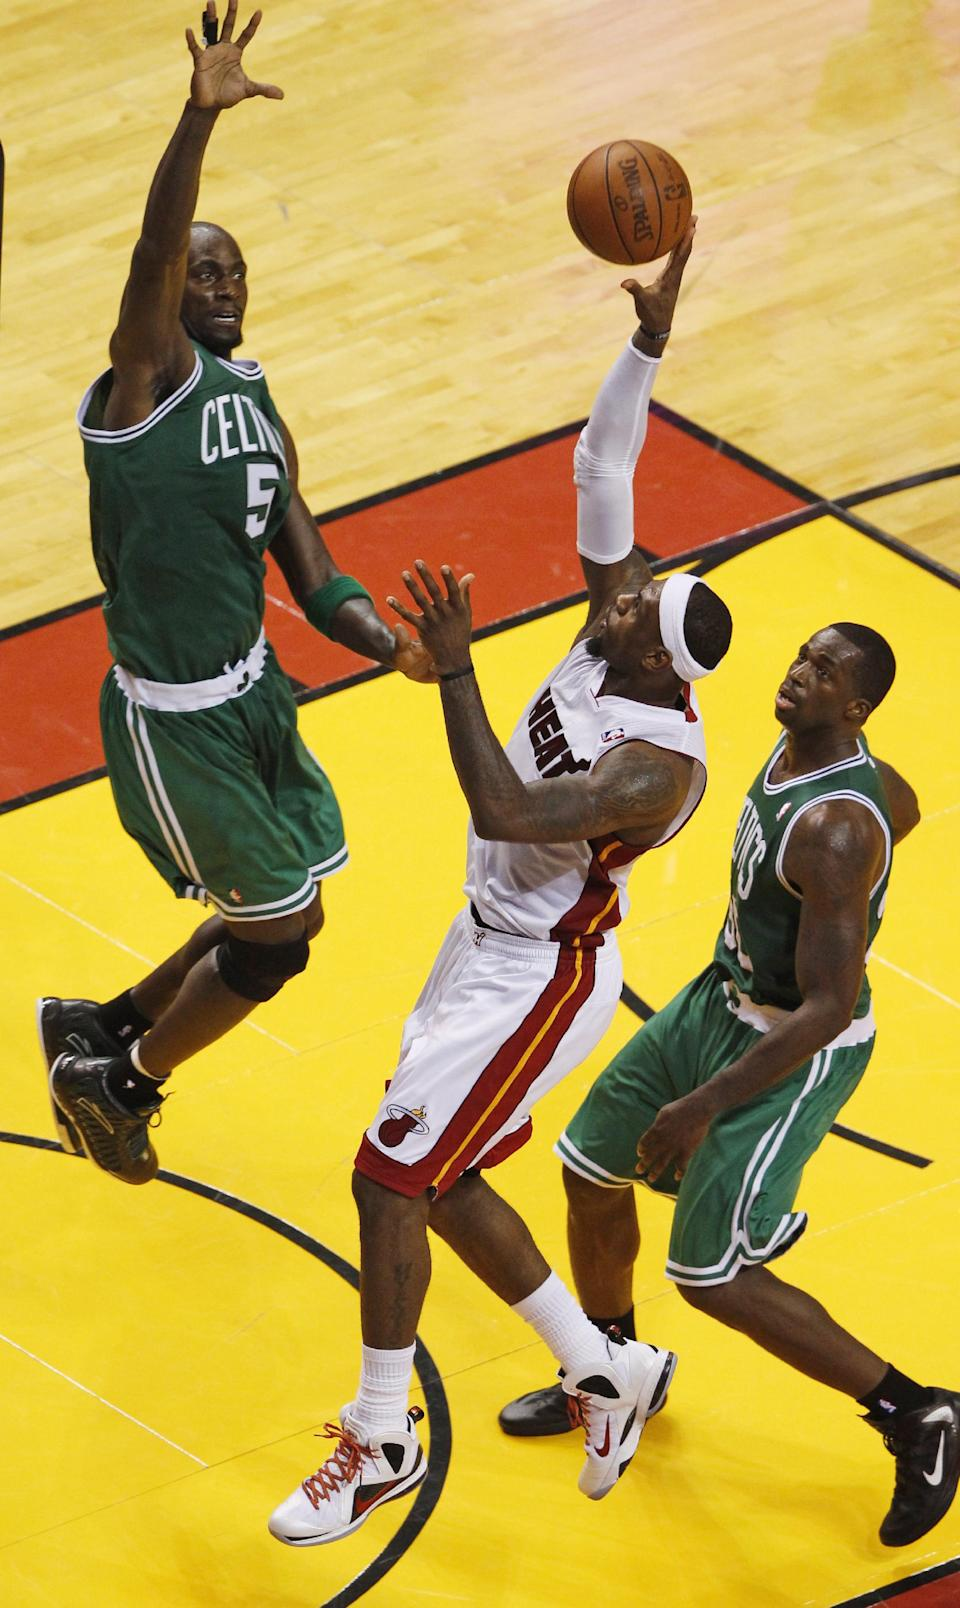 Miami Heat's LeBron James (6) drives to the basket as Boston Celtics' Kevin Garnett (5) defends during the second half of Game 7 of the NBA basketball playoffs Eastern Conference finals, Saturday, June 9, 2012, in Miami. At right is Celtics' Brandon Bass (30). (AP Photo/Wilfredo Lee)